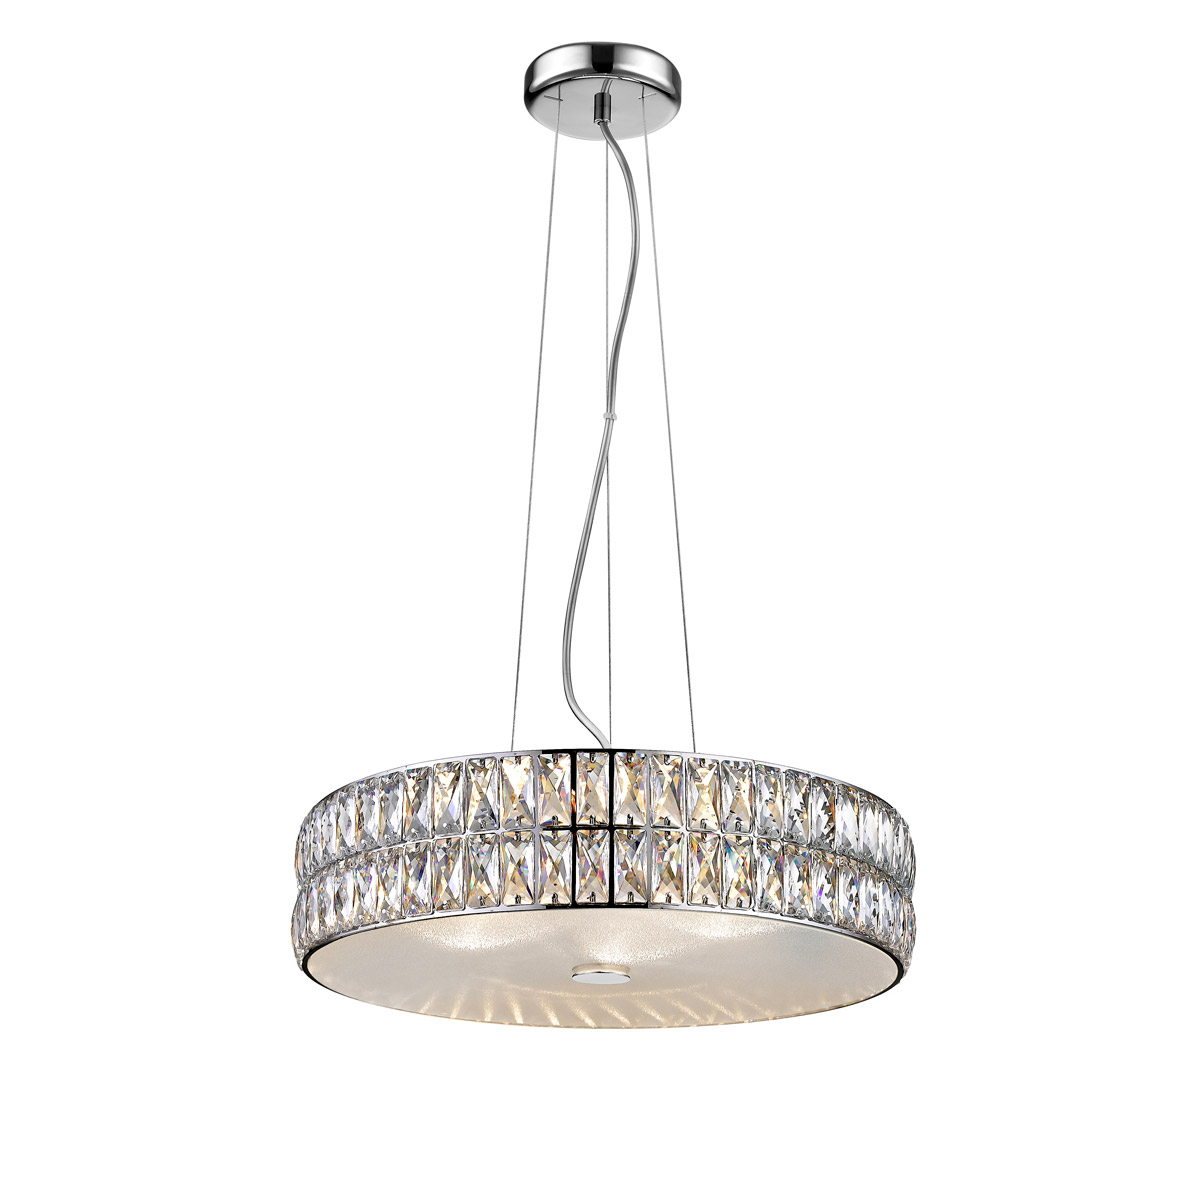 Access lighting 62359ledd msscry magari pendants mirrored stainless image is loading access lighting 62359ledd mss cry magari pendants mirrored aloadofball Images